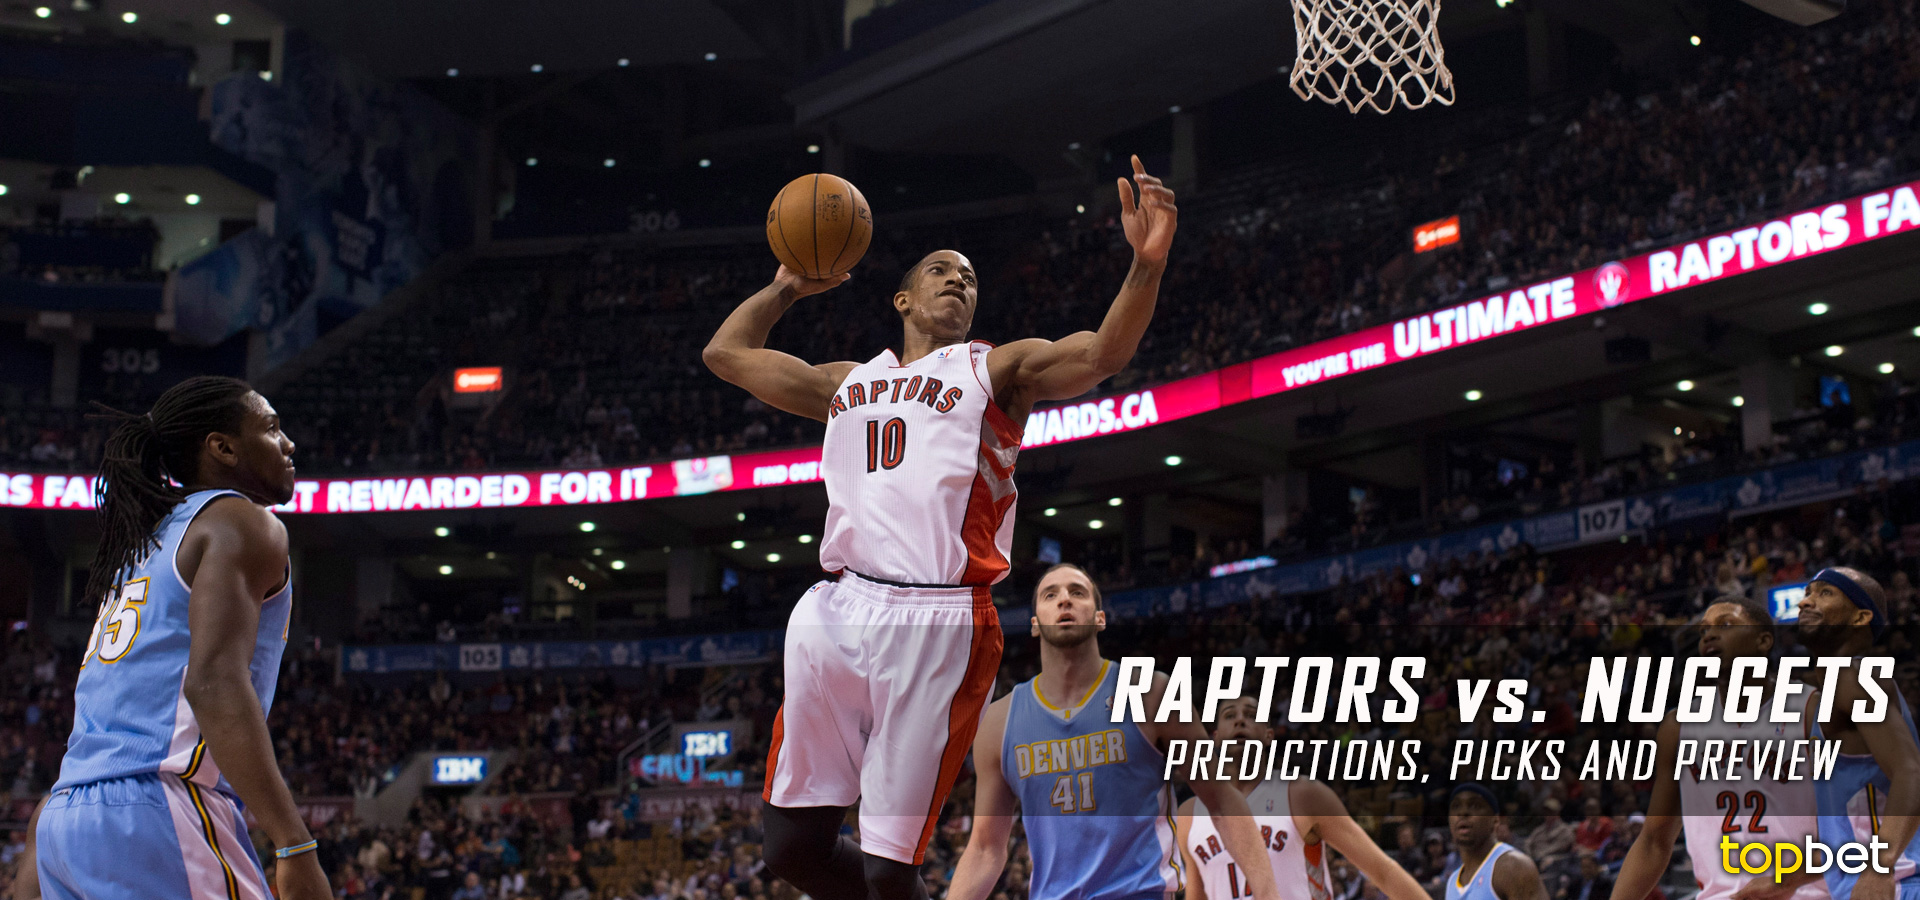 Raptors News: Raptors Vs Nuggets Predictions, Picks & Odds